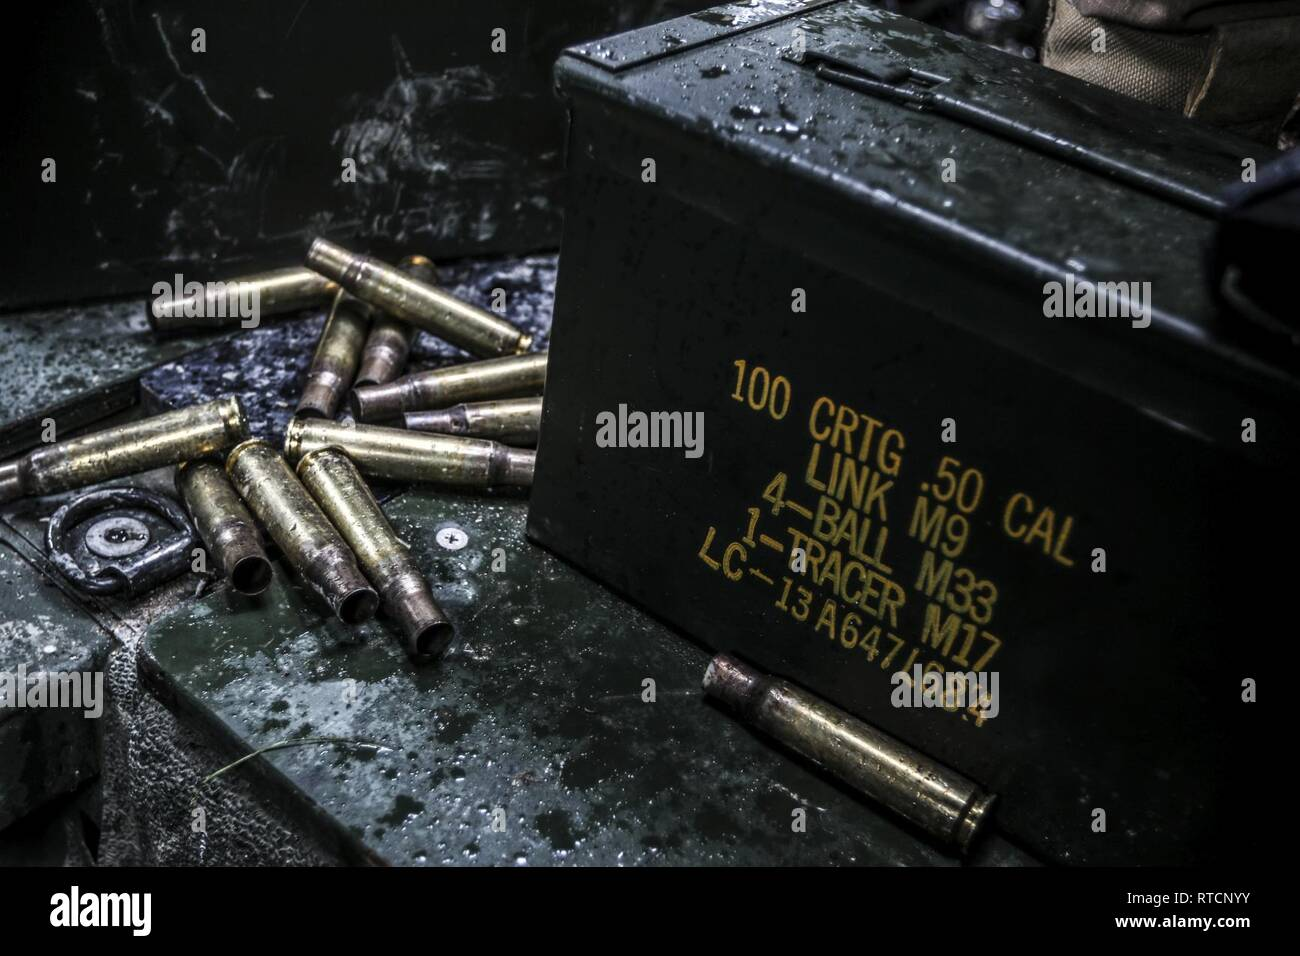 Expended ammo casings, from one crews's .50 cal prequalification run, get wet from winter downpours during Operation Cold Steel III at Fort Hunter Liggett, Calif., Feb. 14, 2019. Operation Cold Steel III trains and qualifies Army Reserve Soldiers on M2 .50 caliber machine guns, M19 40 mm automatic grenade launchers and M240 7.62 mm machine guns weapons systems in ground and mounted military vehicles, in order to provide lethal and combat ready units ready to deploy anywhere in the world. - Stock Image